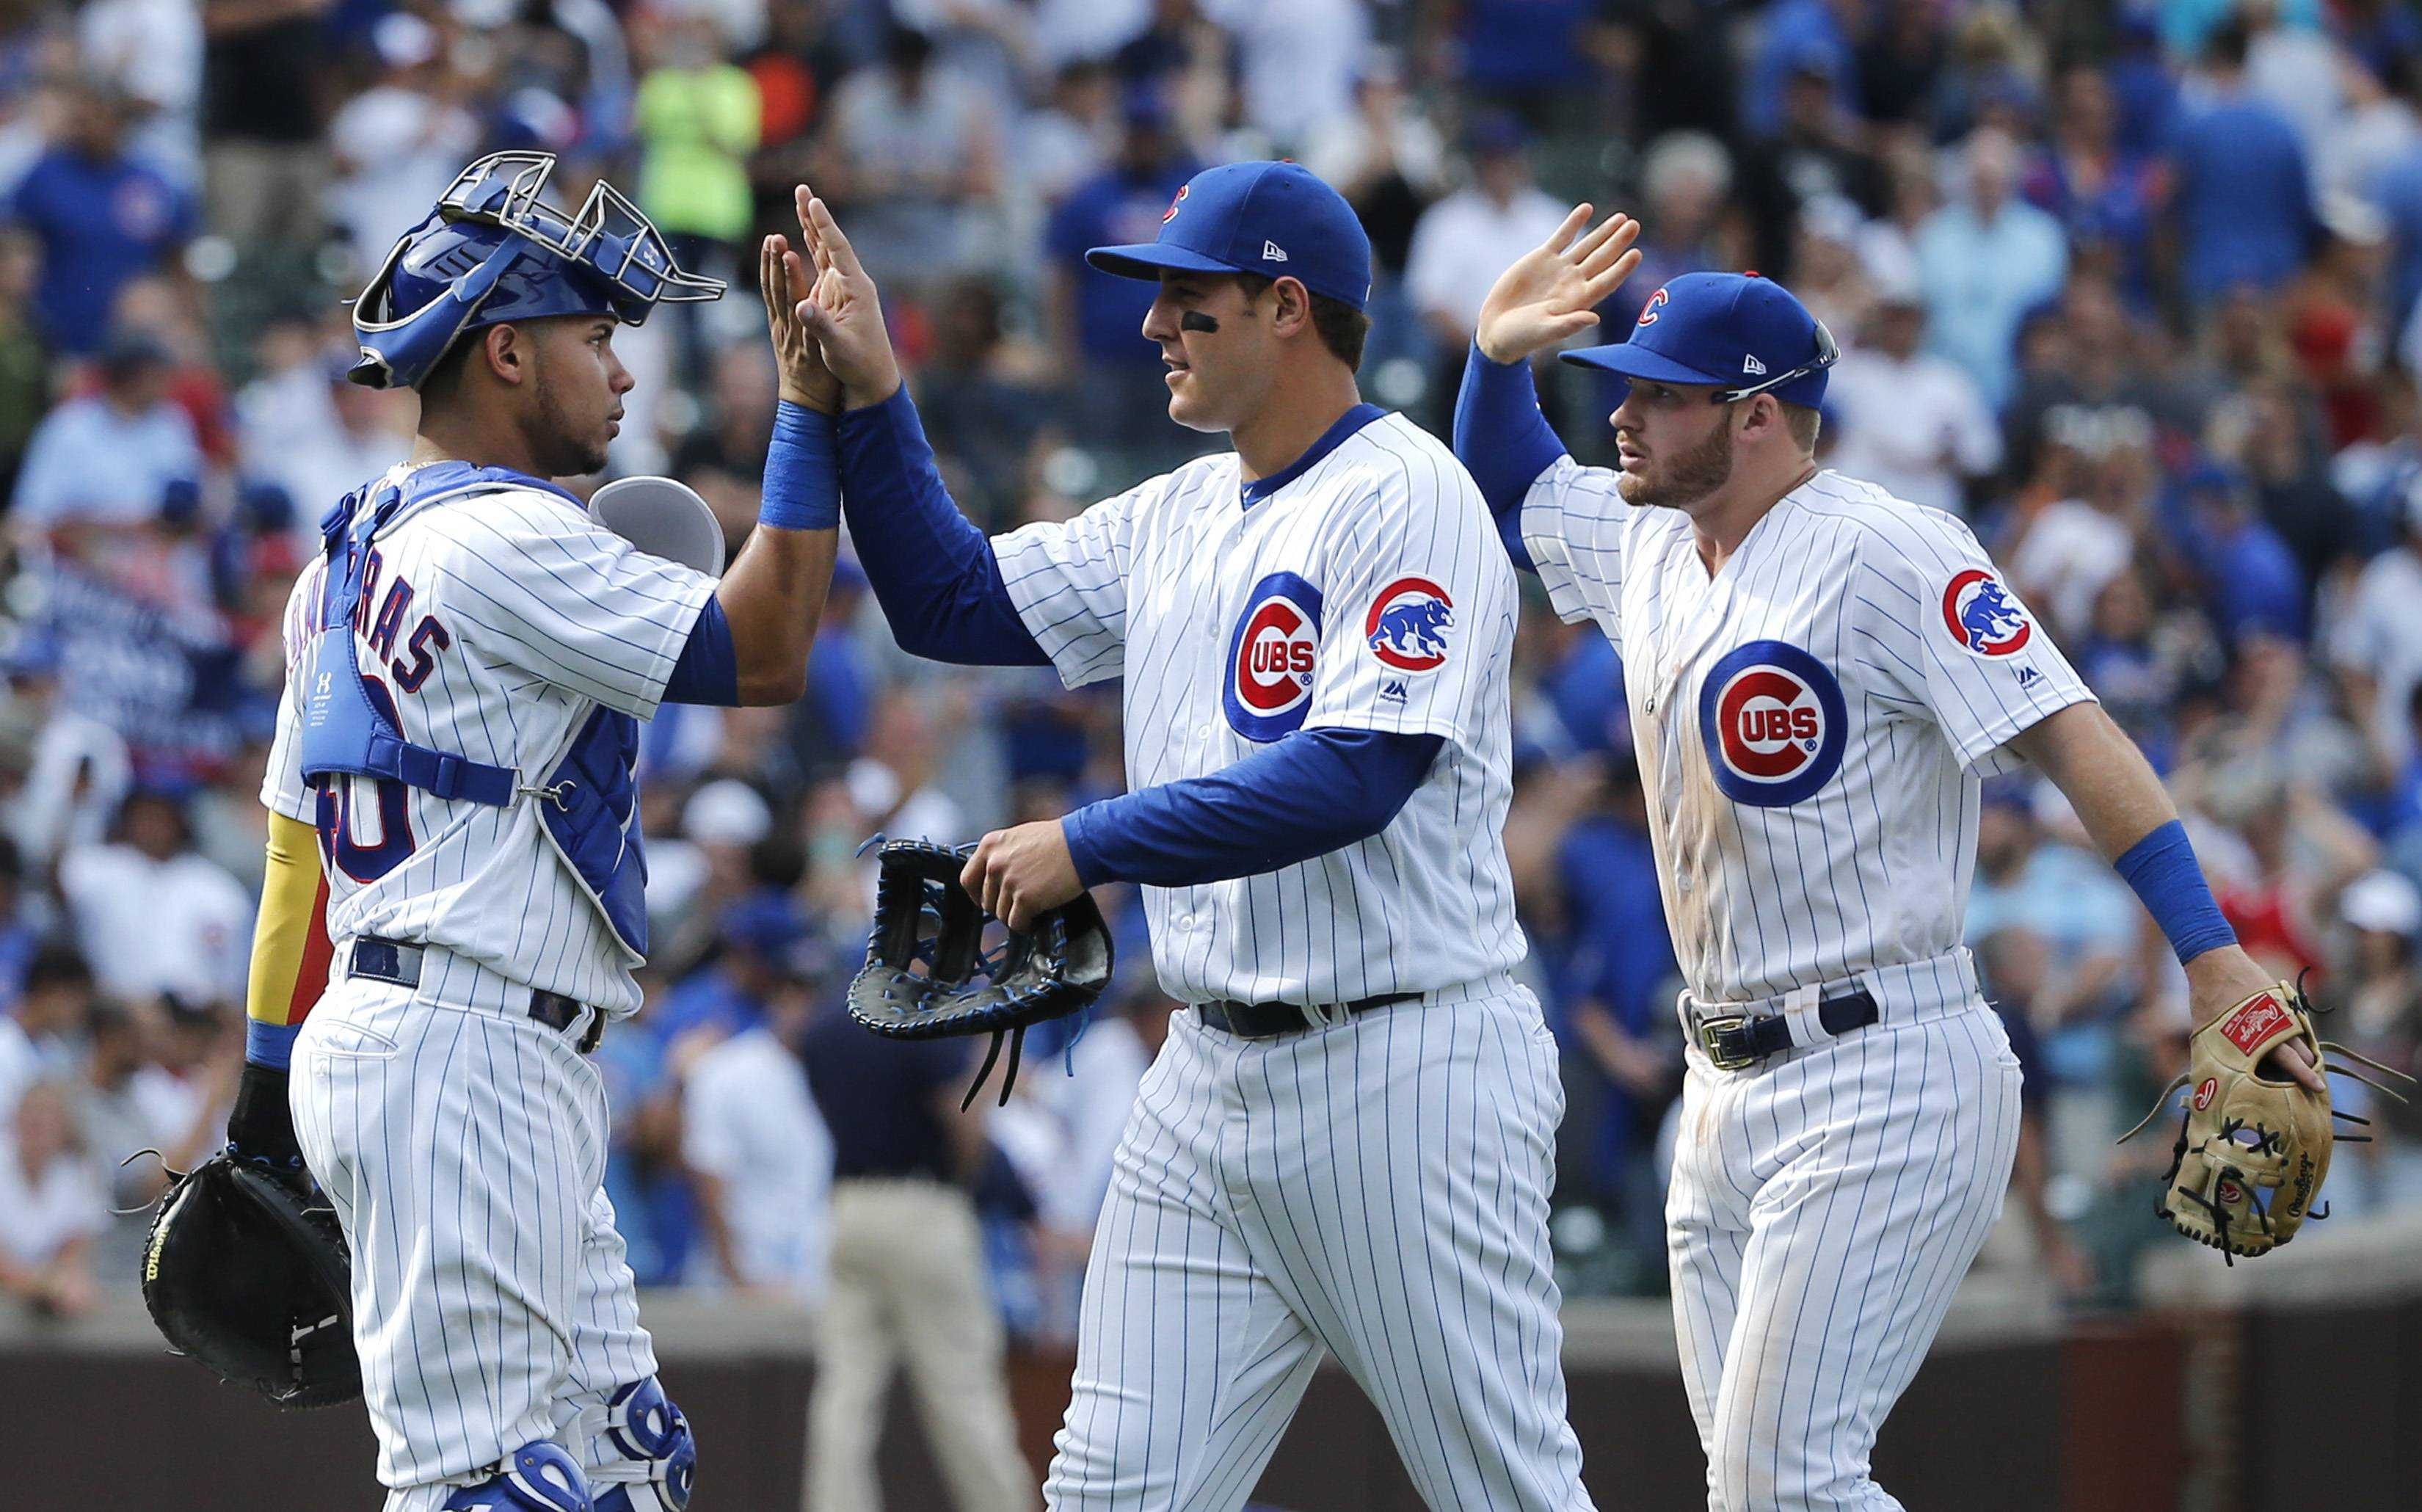 Chicago Cubs' Willson Contreras, left, Anthony Rizzo, center, and Ian Happ celebrate the team's 7-2 win over the Chicago White Sox in a baseball game Tuesday, July 25, 2017, in Chicago.